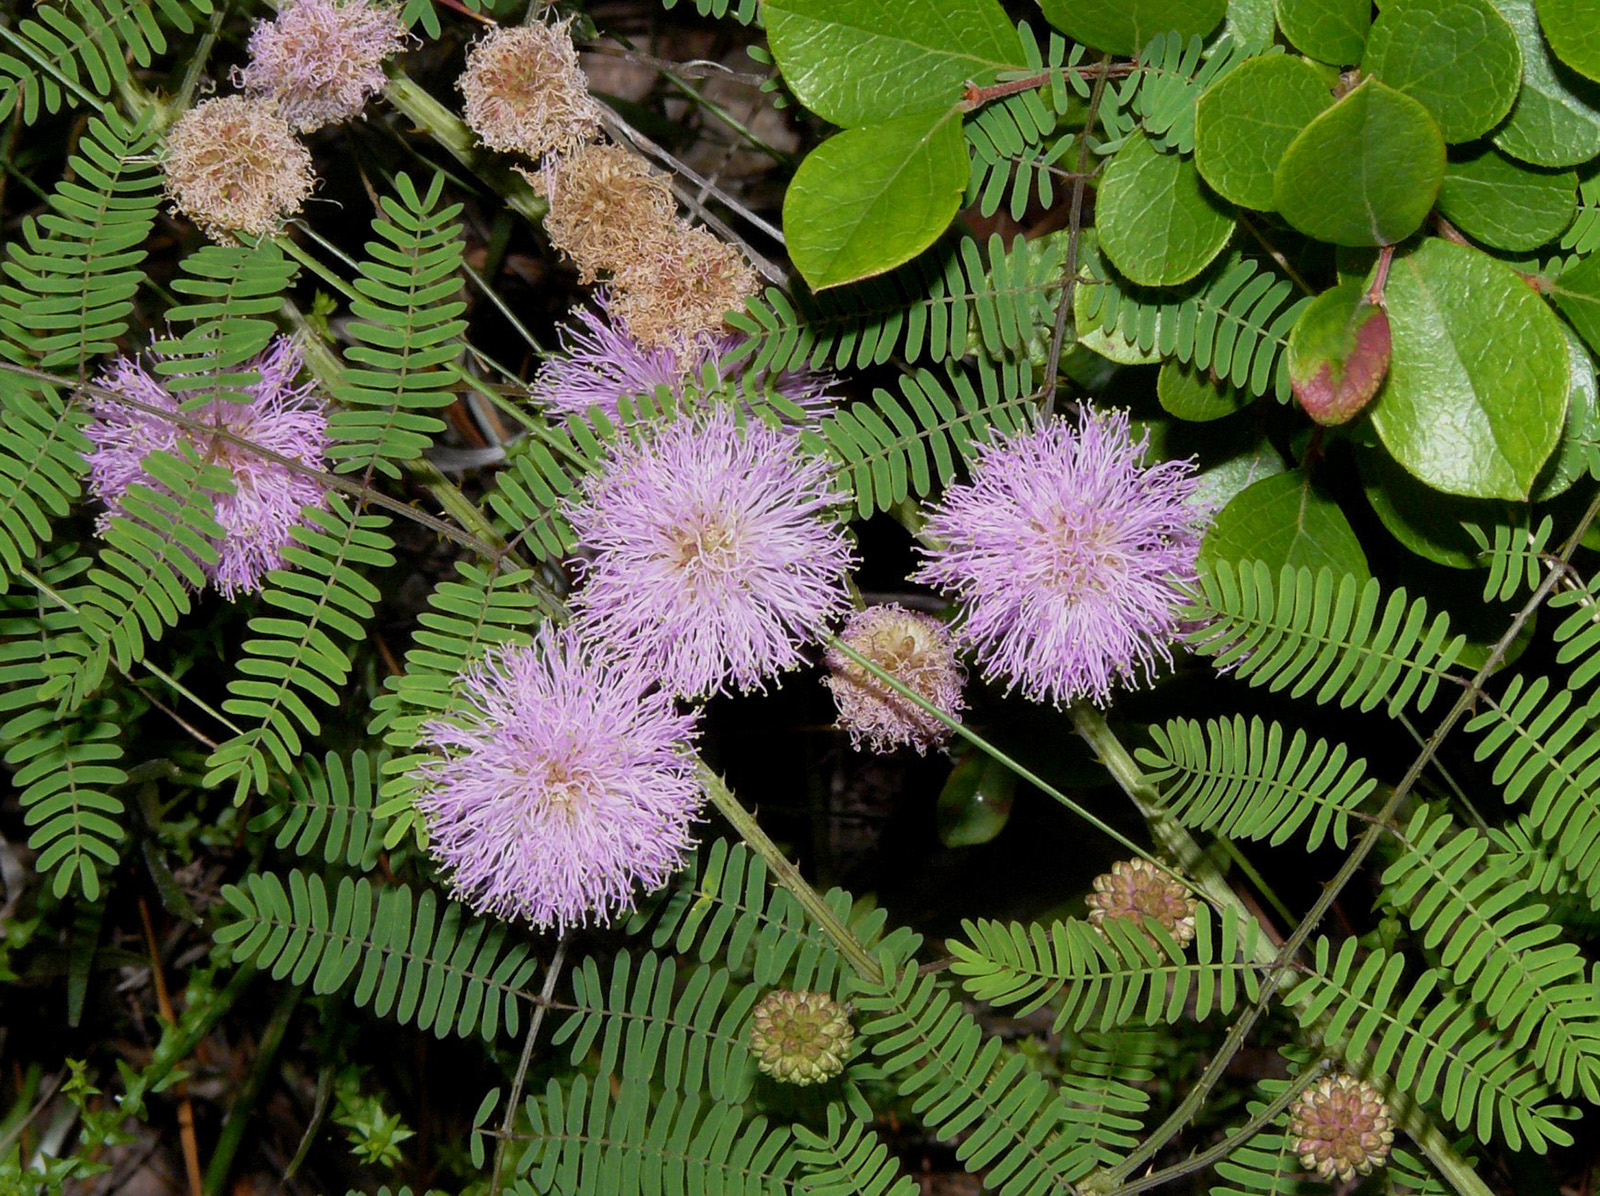 <i>Mimosa microphylla</i>, or littleleaf sensitive-briar